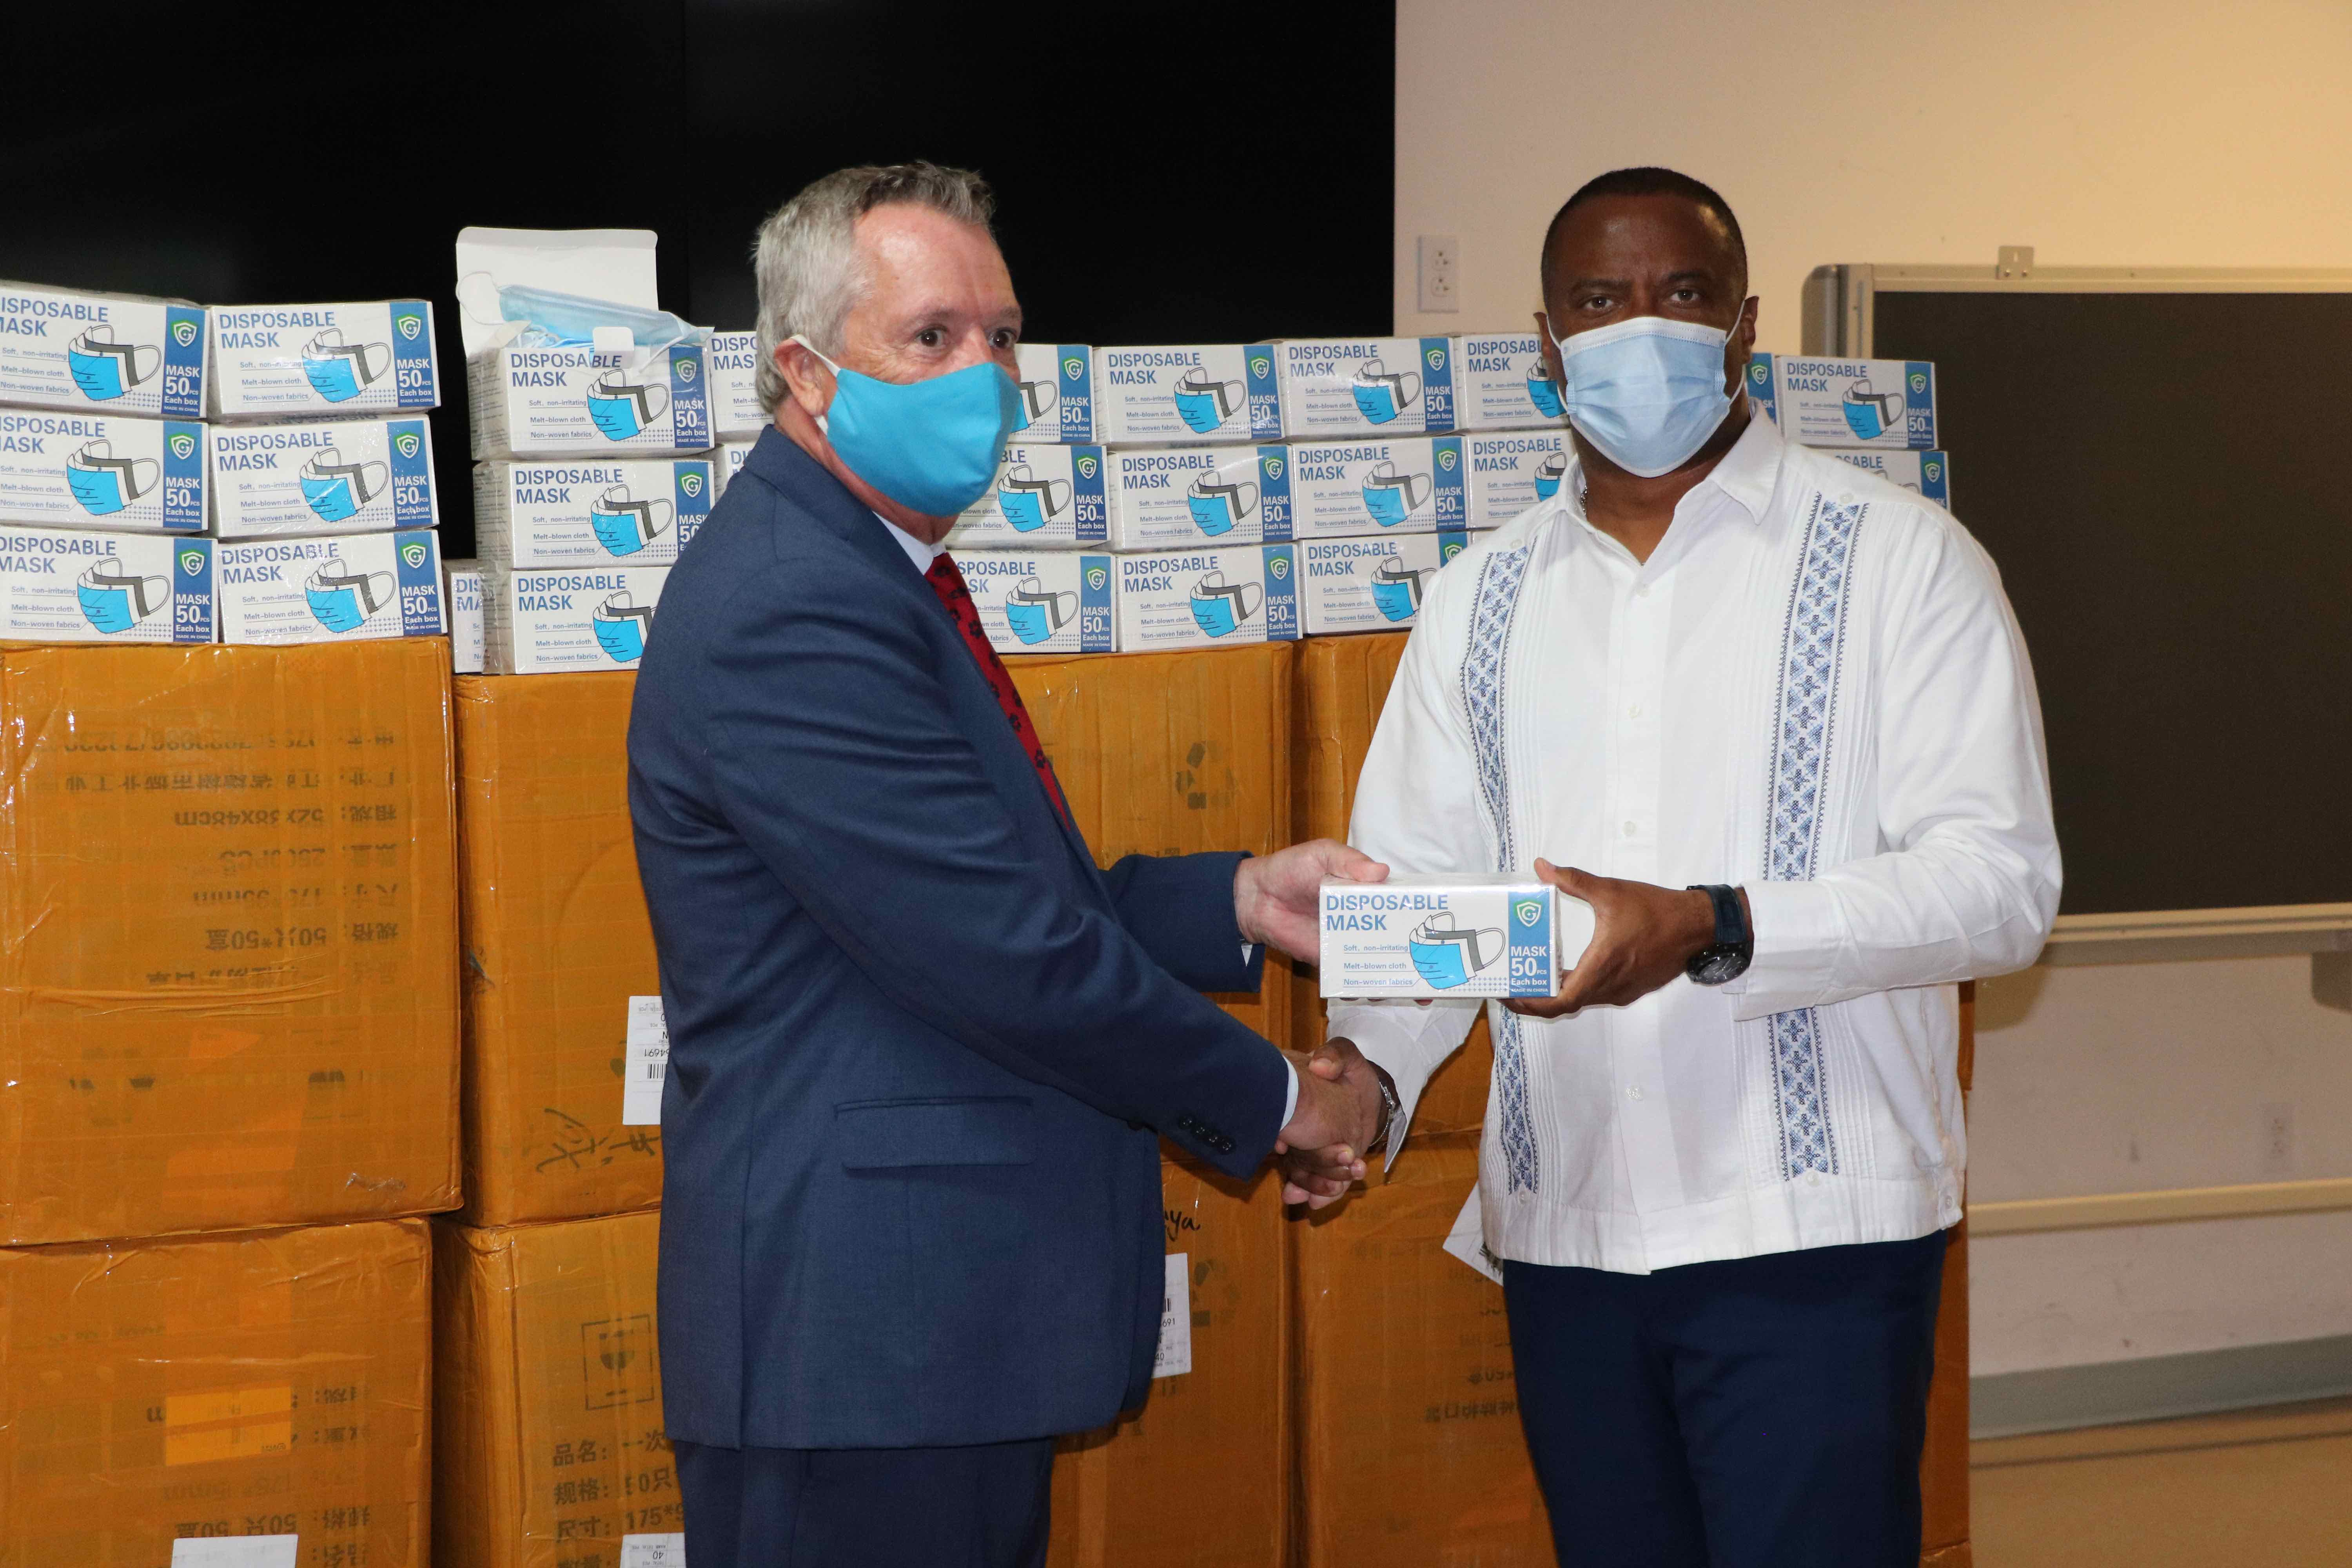 Premier of Nevis Hon. Mark Brantley, Senior Minister of Health in the Nevis Island Administration (r) accepting the donation of 100,000 disposable masks from Dr. Ralph Crum, Dean of the Medical University of the Americas at a handing over ceremony at the Emergency Operations Centre at Long Point on September 08, 2020